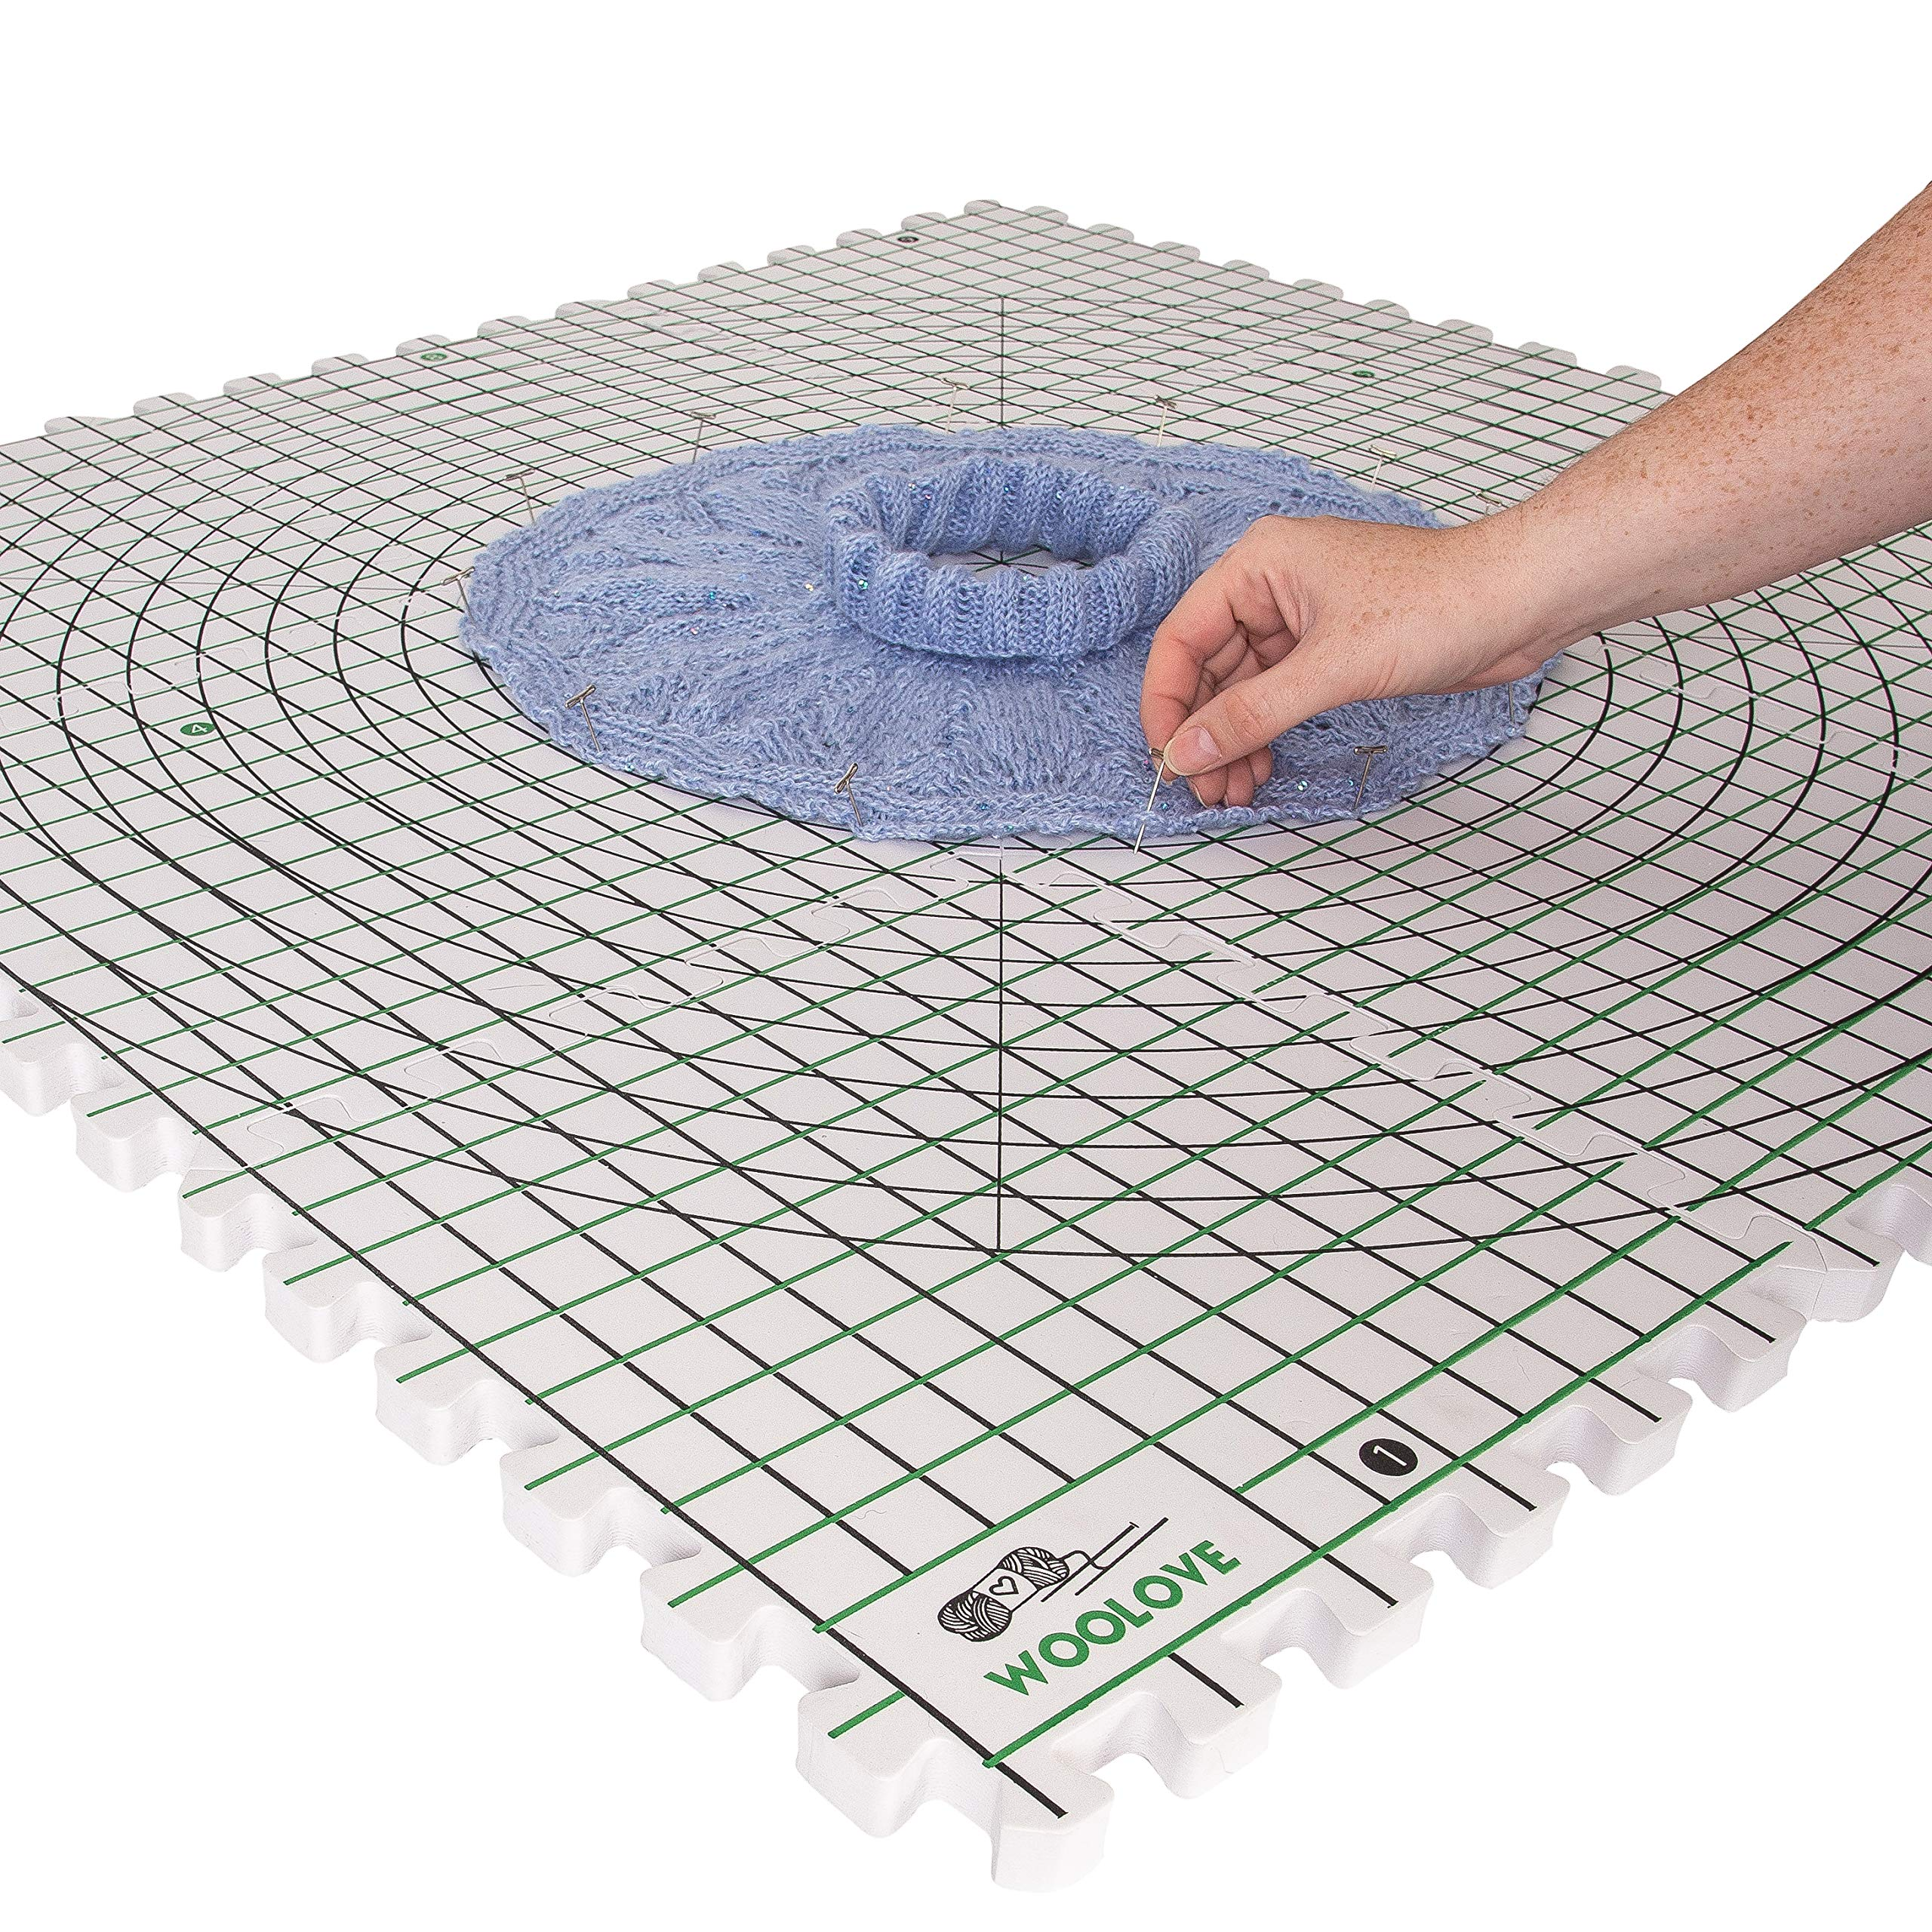 Extra Thick Blocking Mats for Wet and Steam Blocking with Grids and Radial Circles - Set of 9 Marked with Numbers Includes 100 t pins and Storage Bag by WOOLOVE (Image #5)